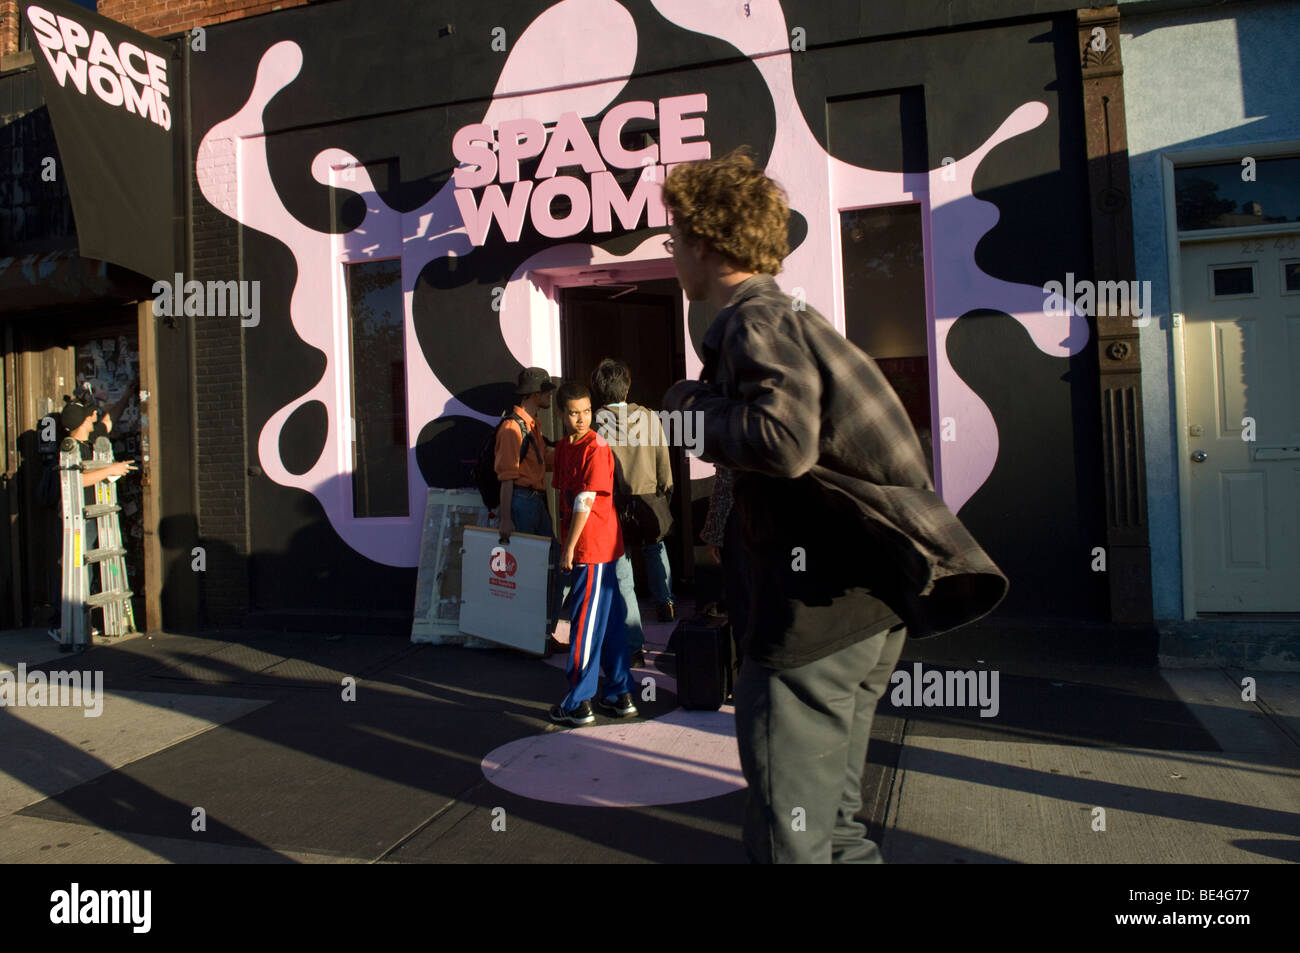 Artists carrying canvases enter the Space Womb gallery in preparation for Long Island City Open Gallery Night - Stock Image